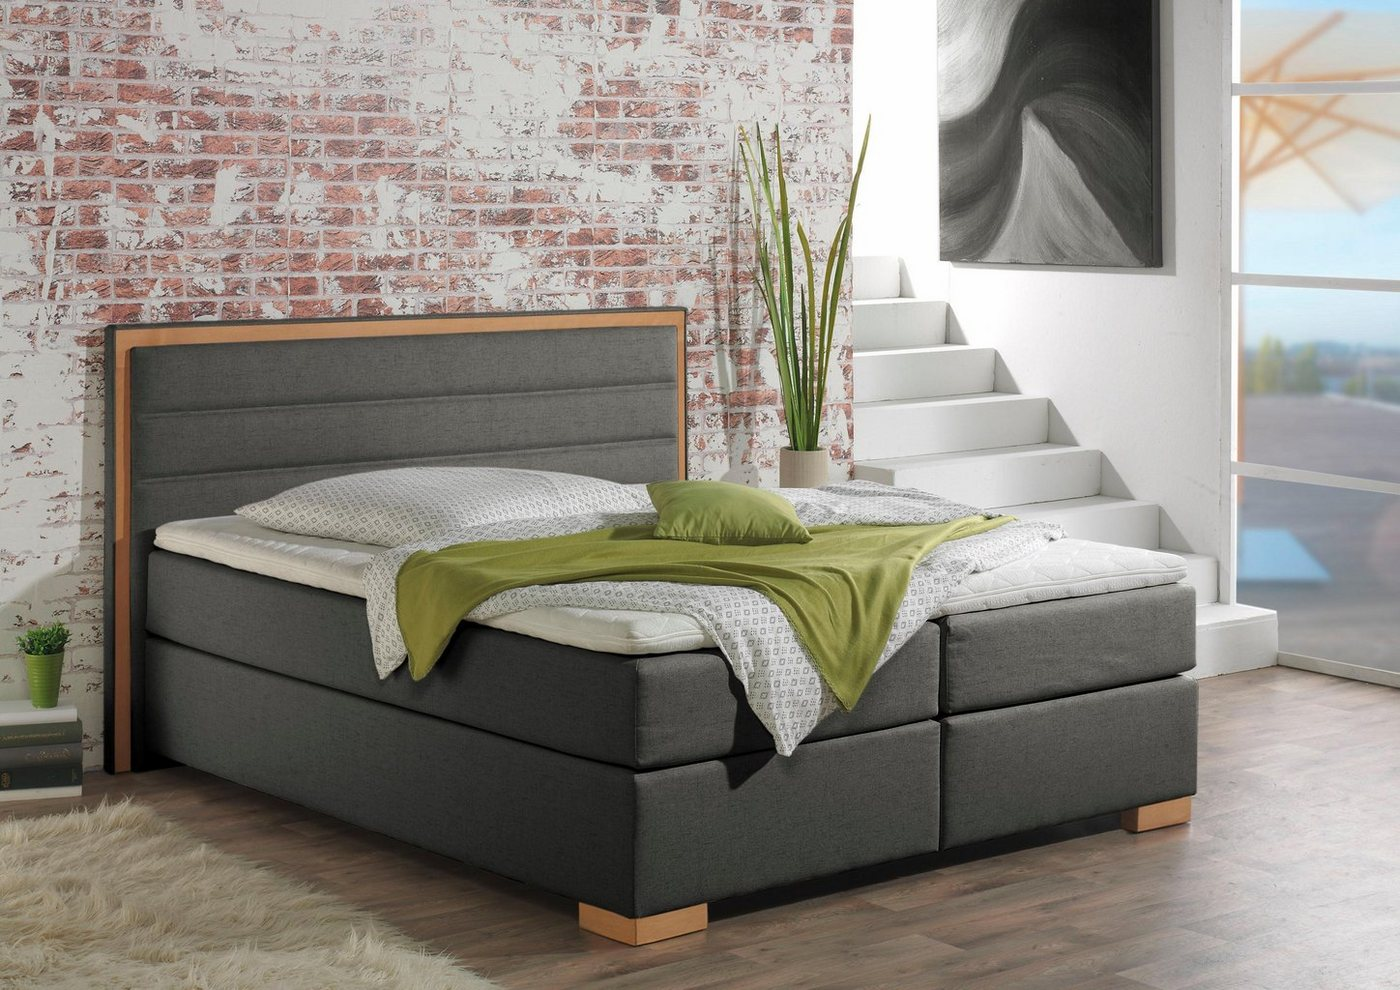 home affaire boxspringbett treviso in 5 breiten 3 ausf hrungen 2 h rtegraden topper. Black Bedroom Furniture Sets. Home Design Ideas